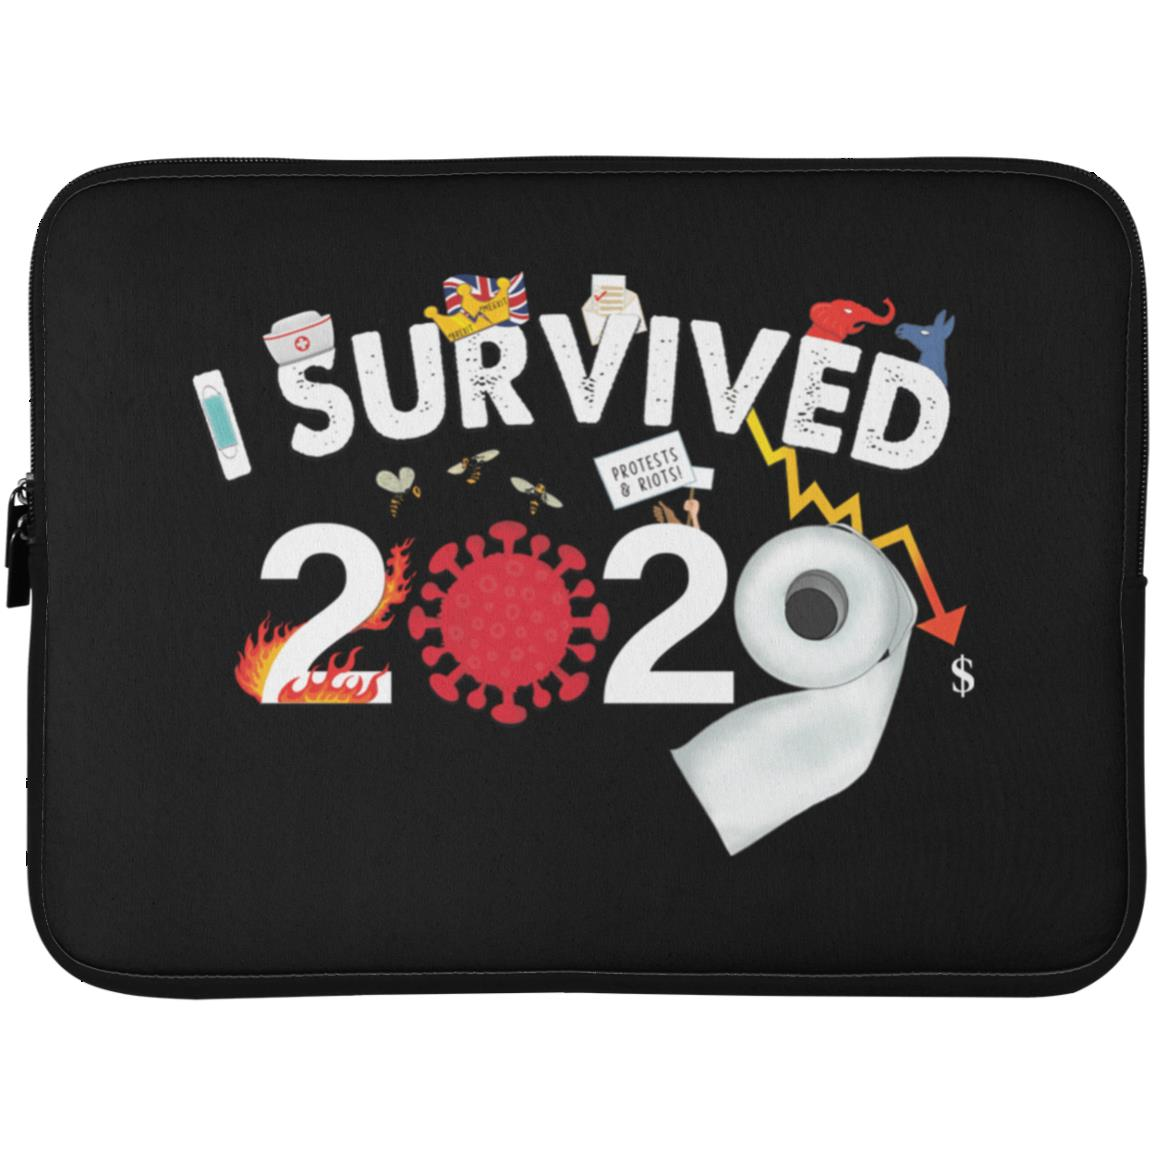 I Survived 2020 - Laptop Sleeve - 15 Inch